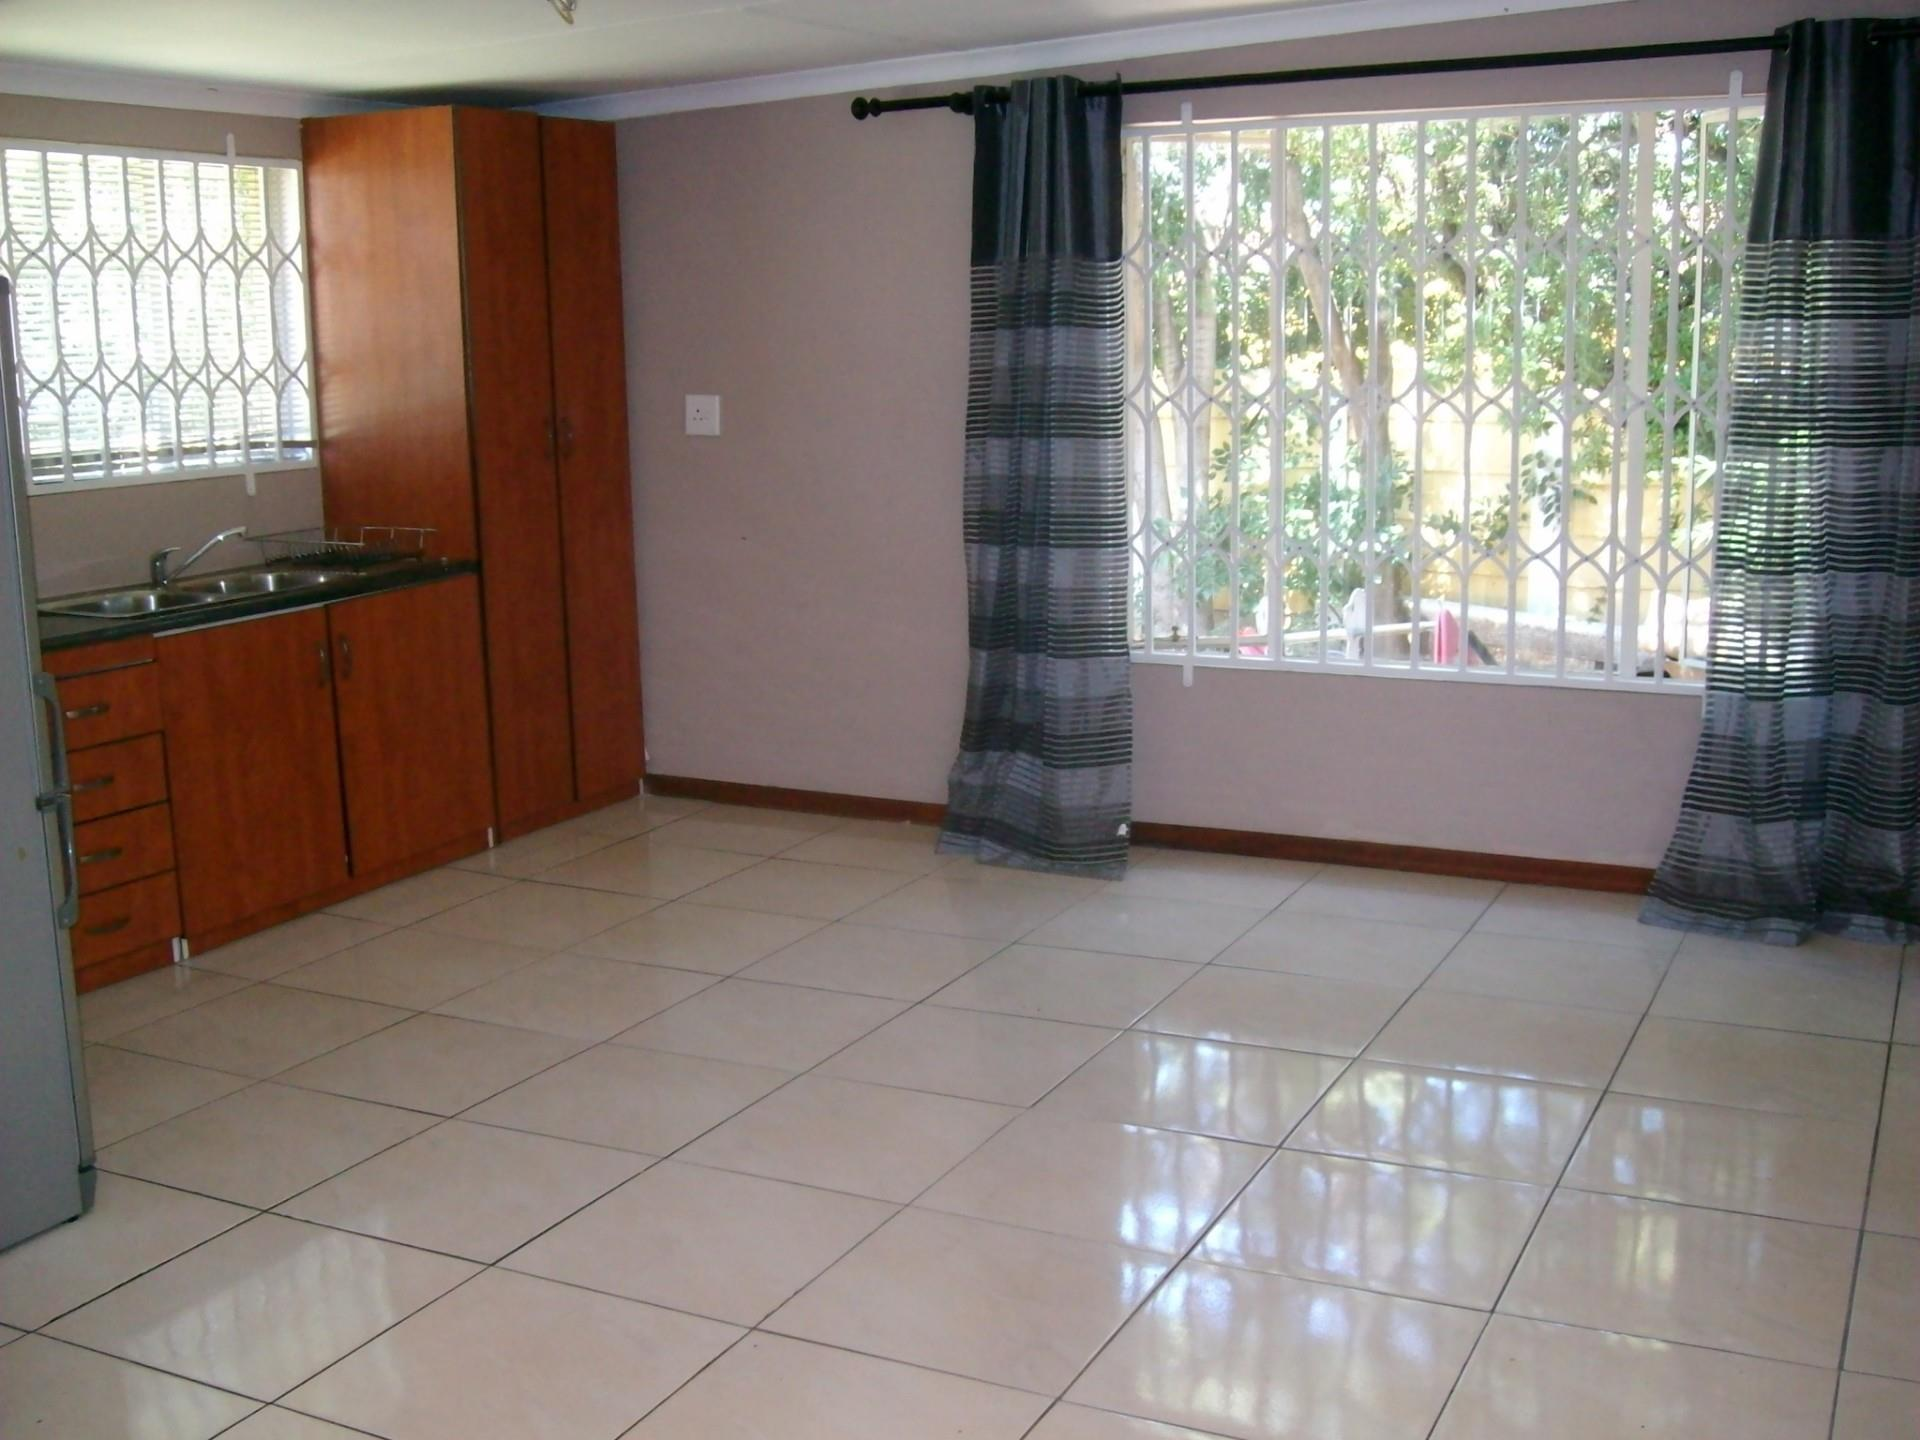 1 Bedroom House To Rent in Kibler Park